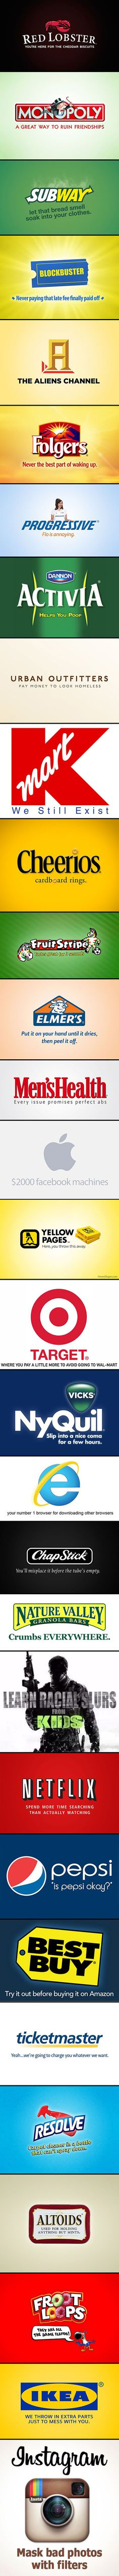 The red lobster & target ones are so true but the ikea one is not true!!